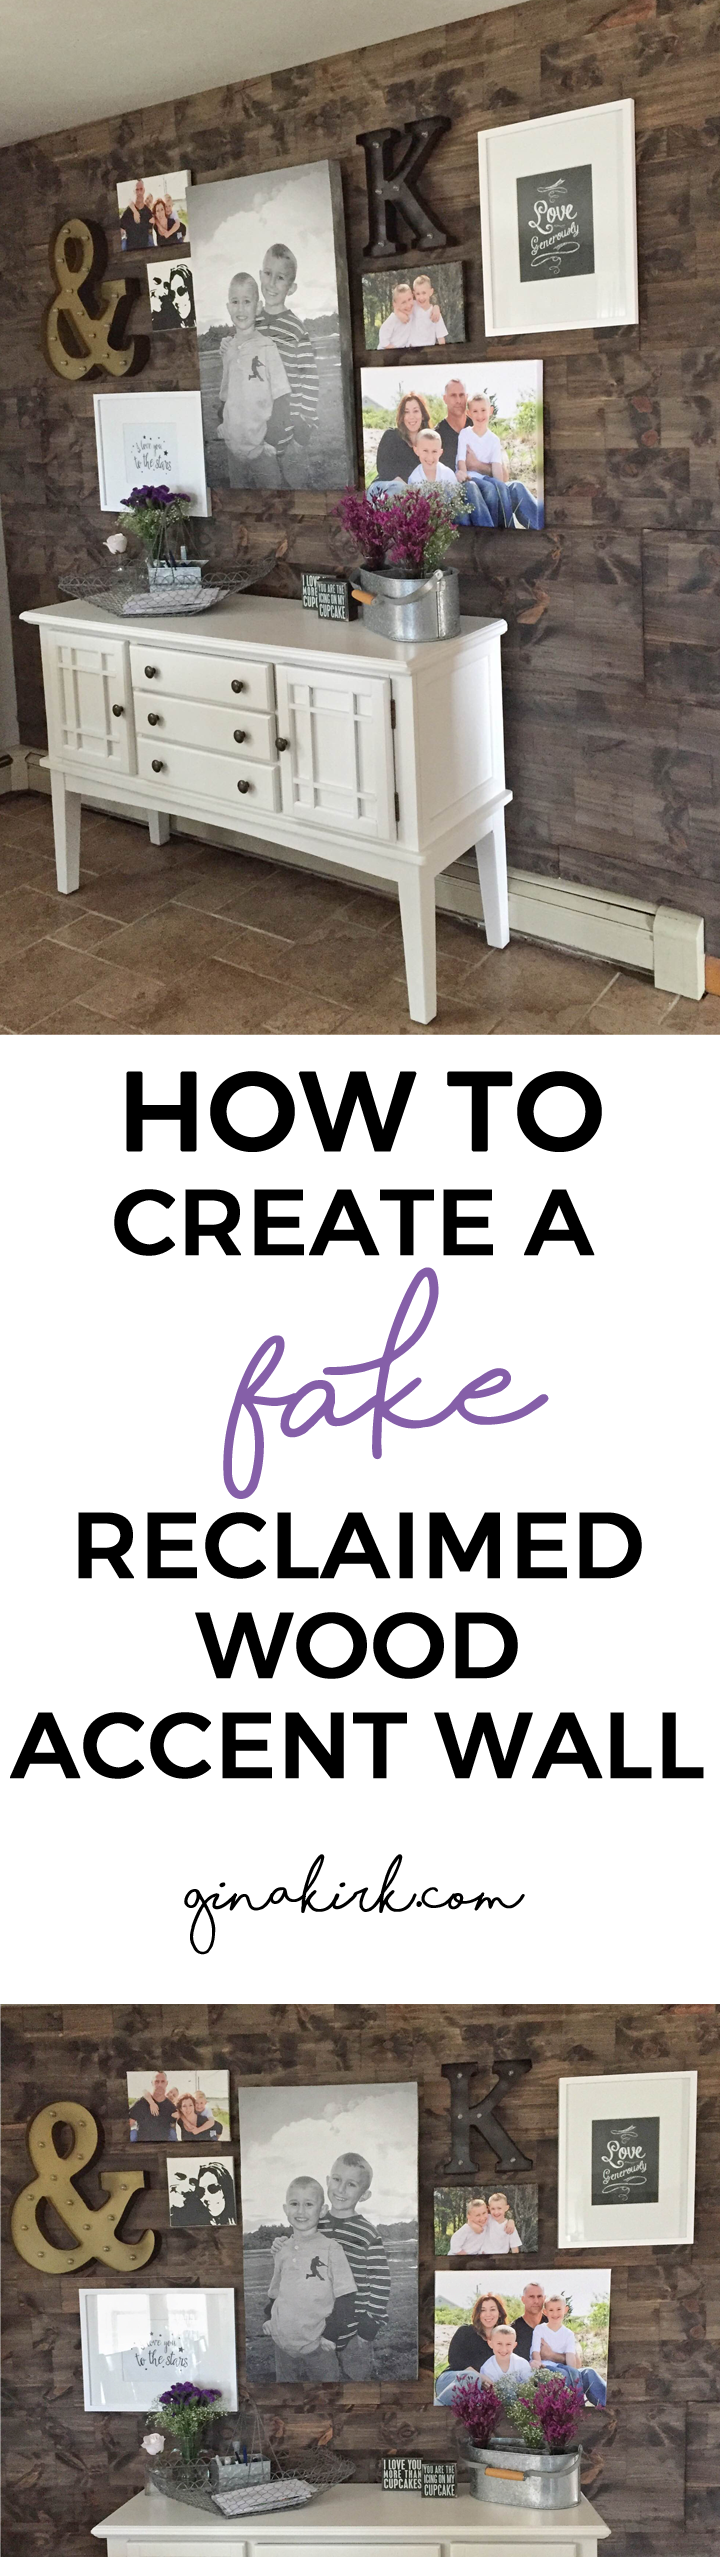 How To Fake A Reclaimed Wood Wall Reclaimed Wood Projects